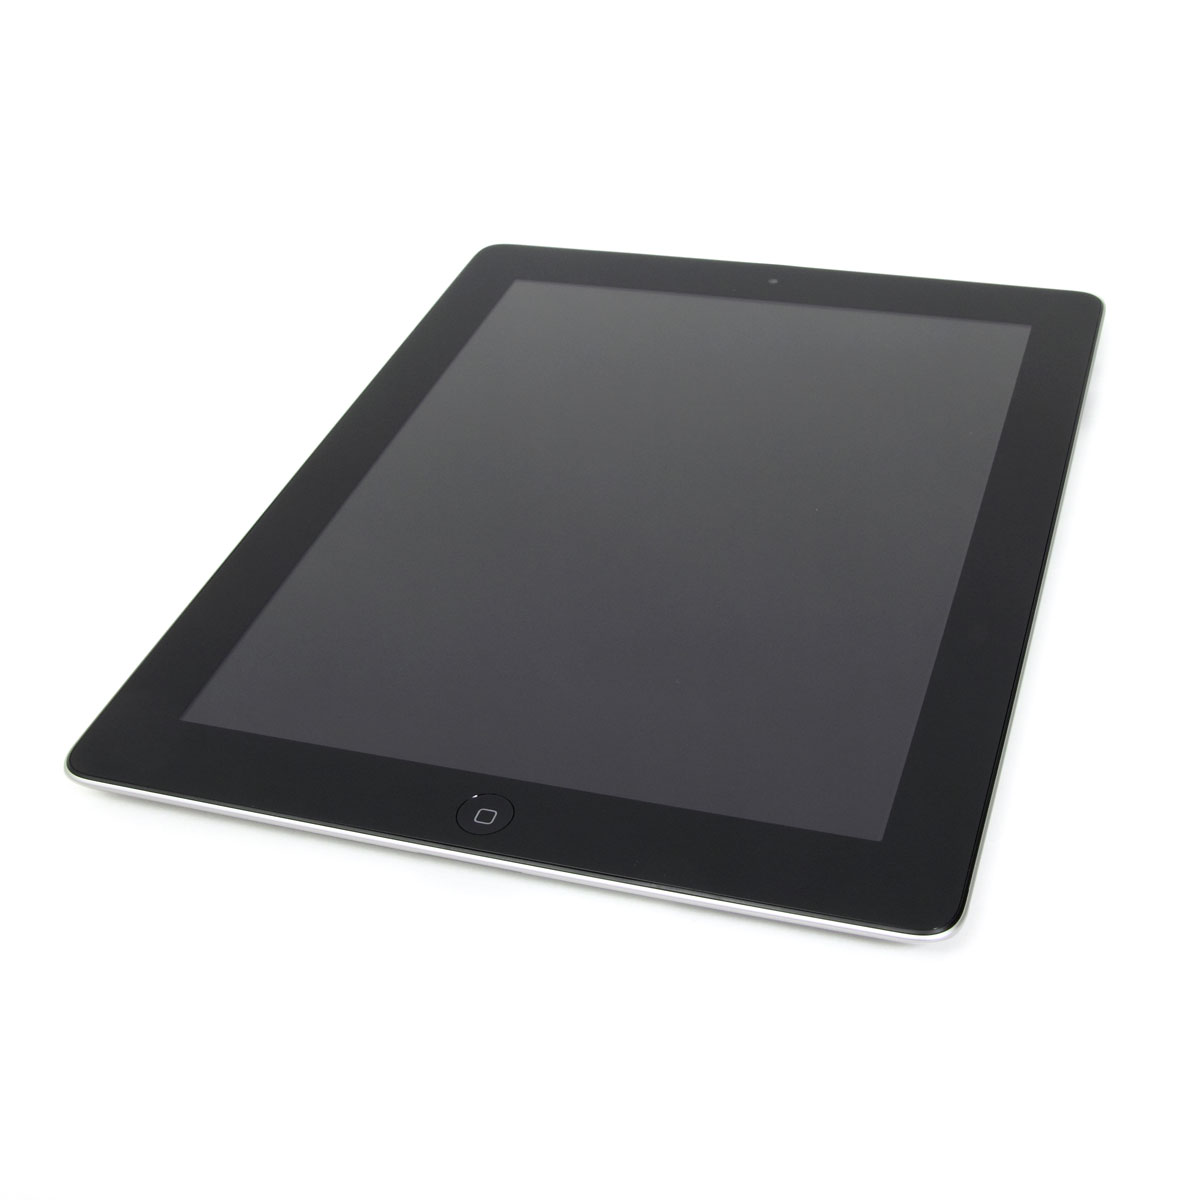 apple nouvel ipad wi fi 4g 16 go noir tablette tactile apple sur. Black Bedroom Furniture Sets. Home Design Ideas